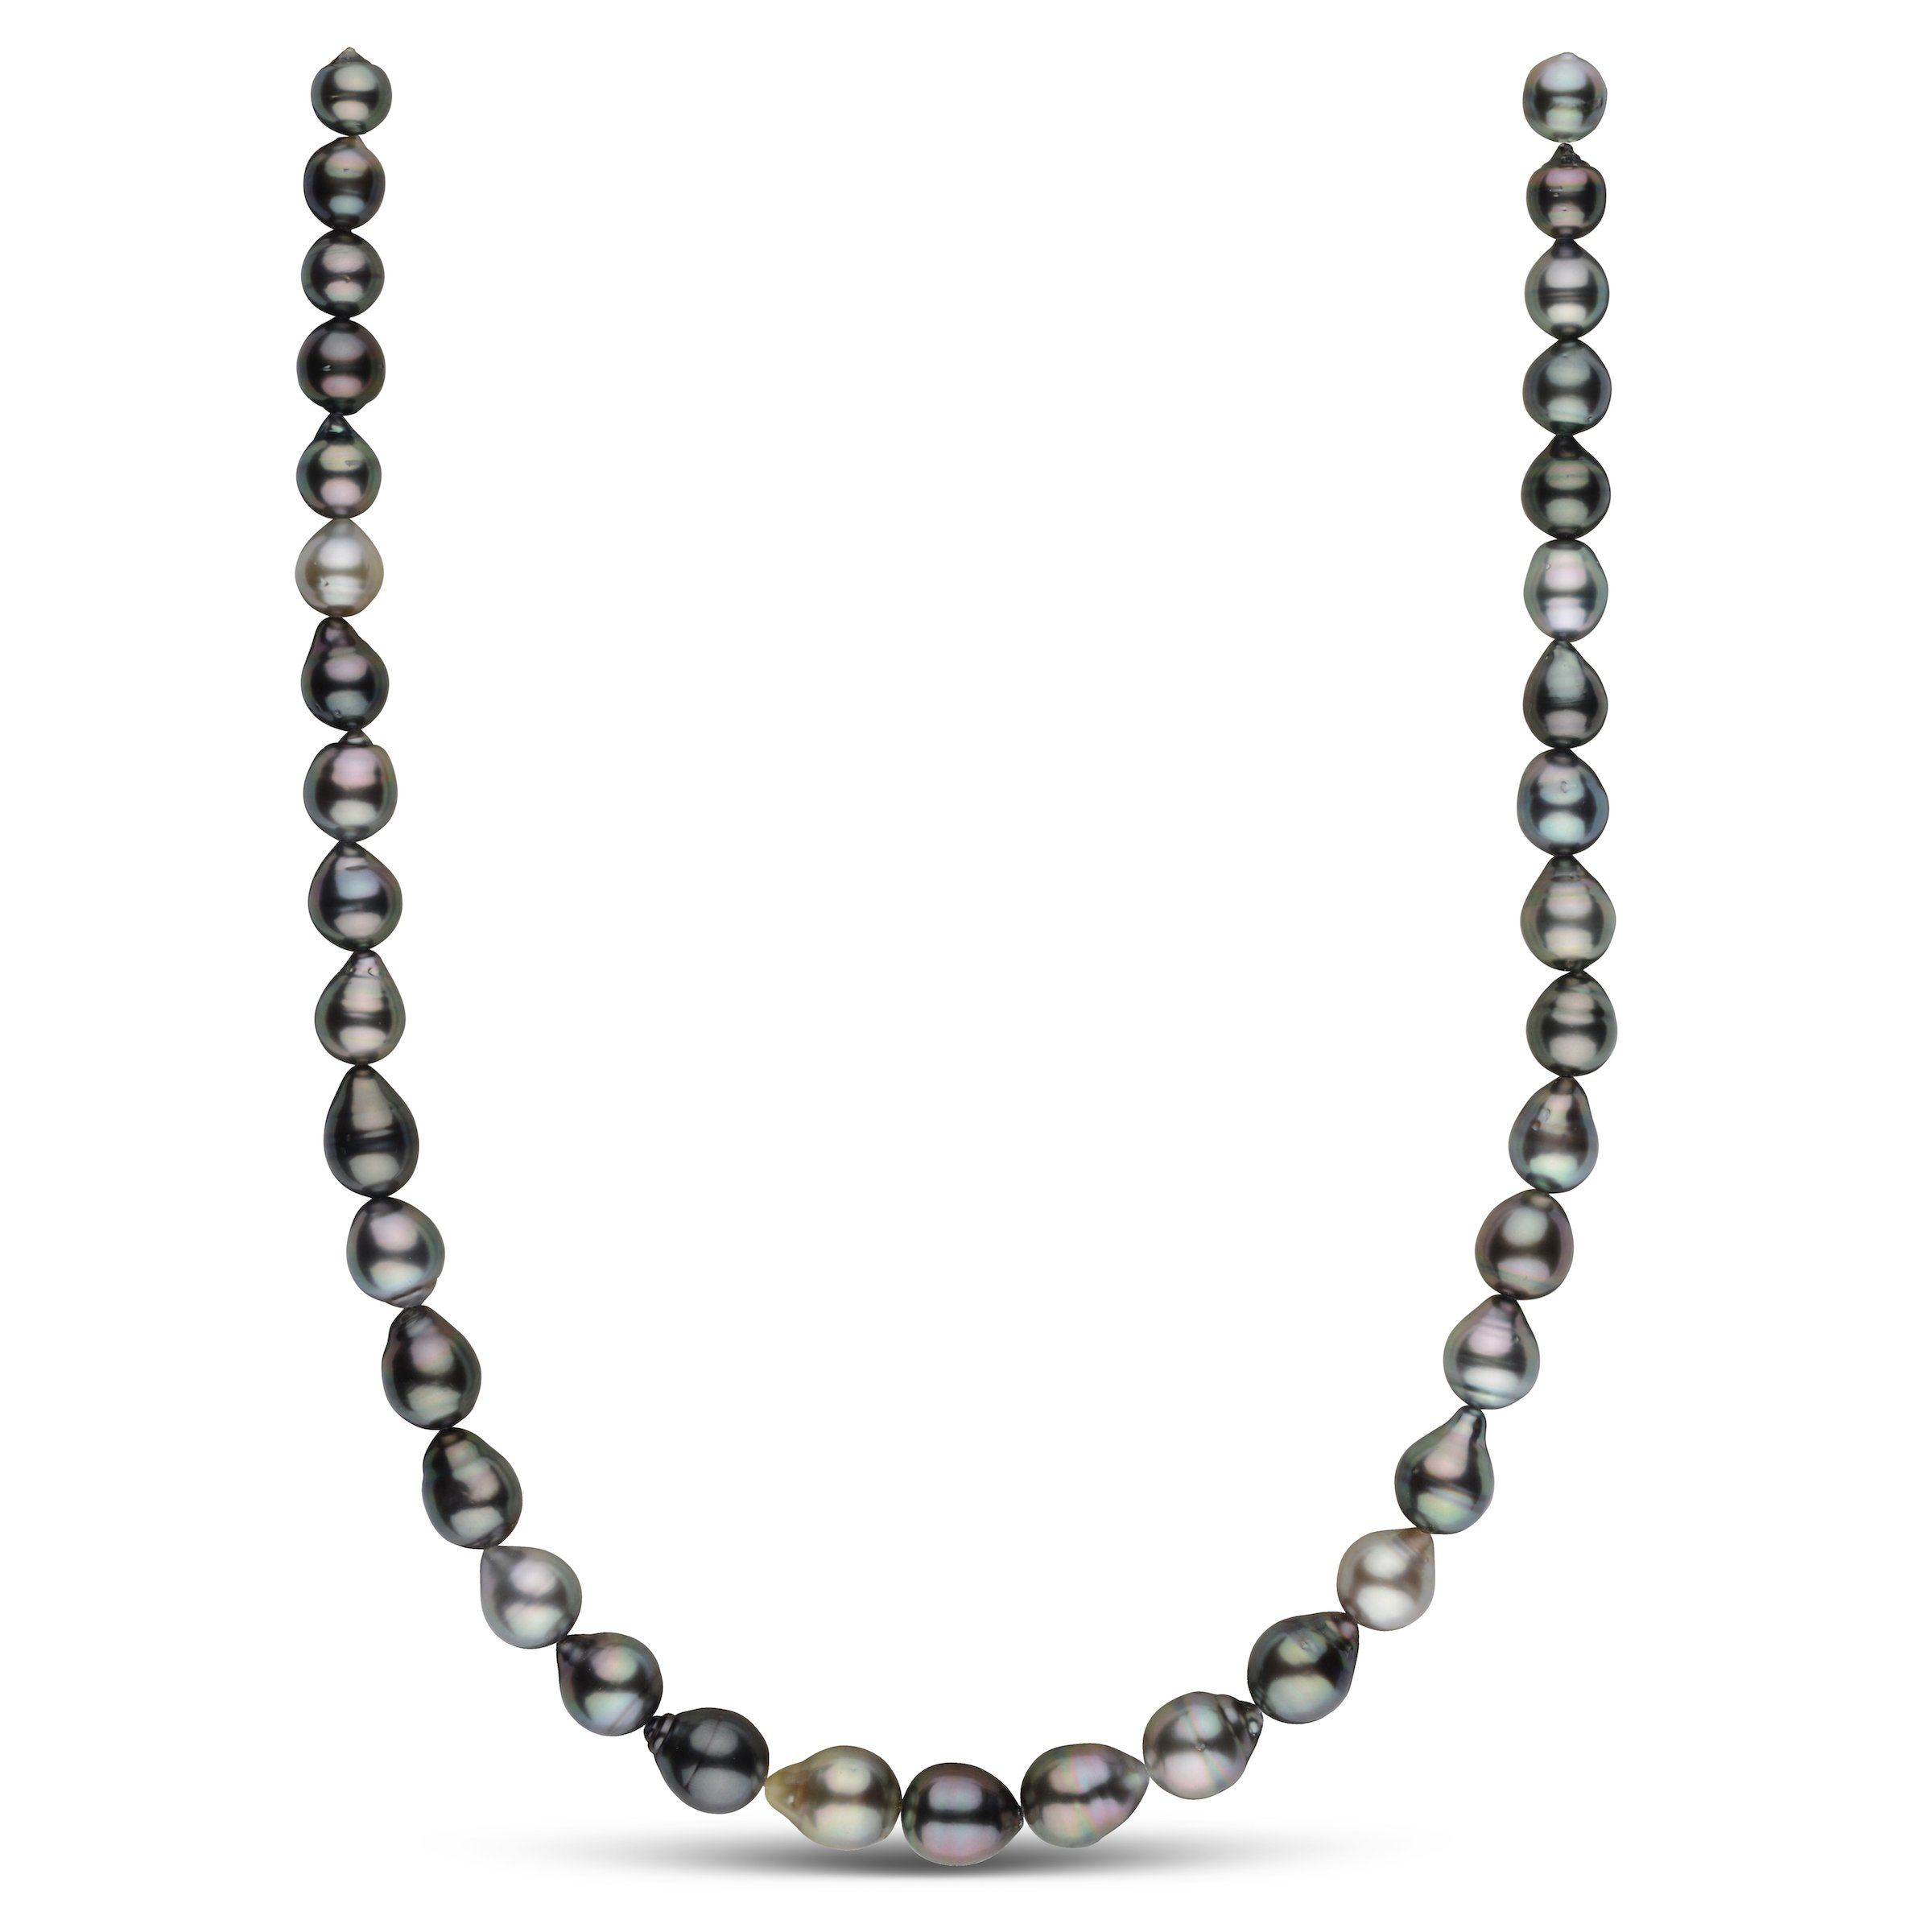 8.0-10.3 mm AAA Tahitian Baroque Pearl Necklace